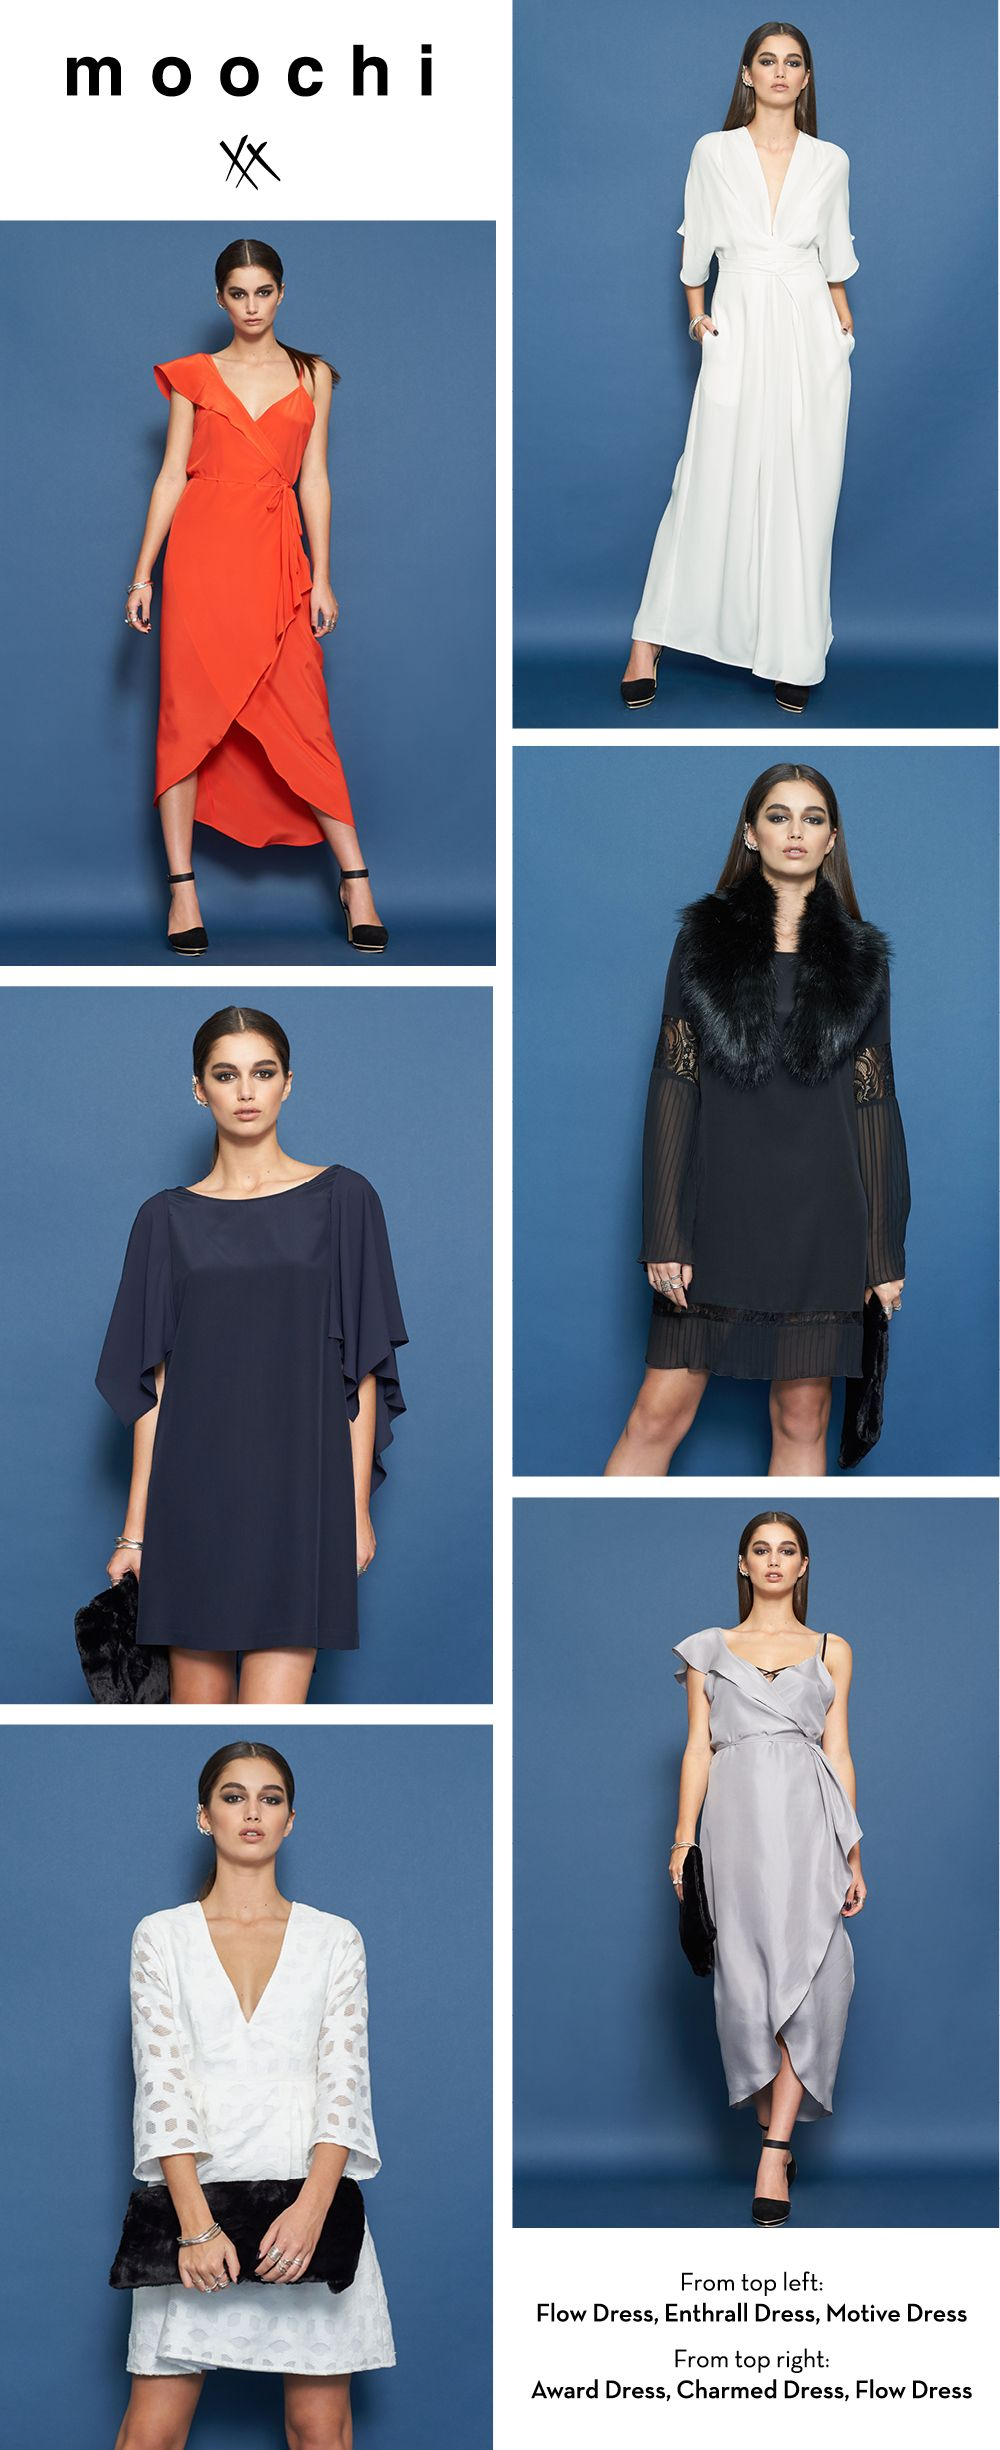 Moochi Dress Week | Autumn/Winter Fashion at Milford | Pinterest ...